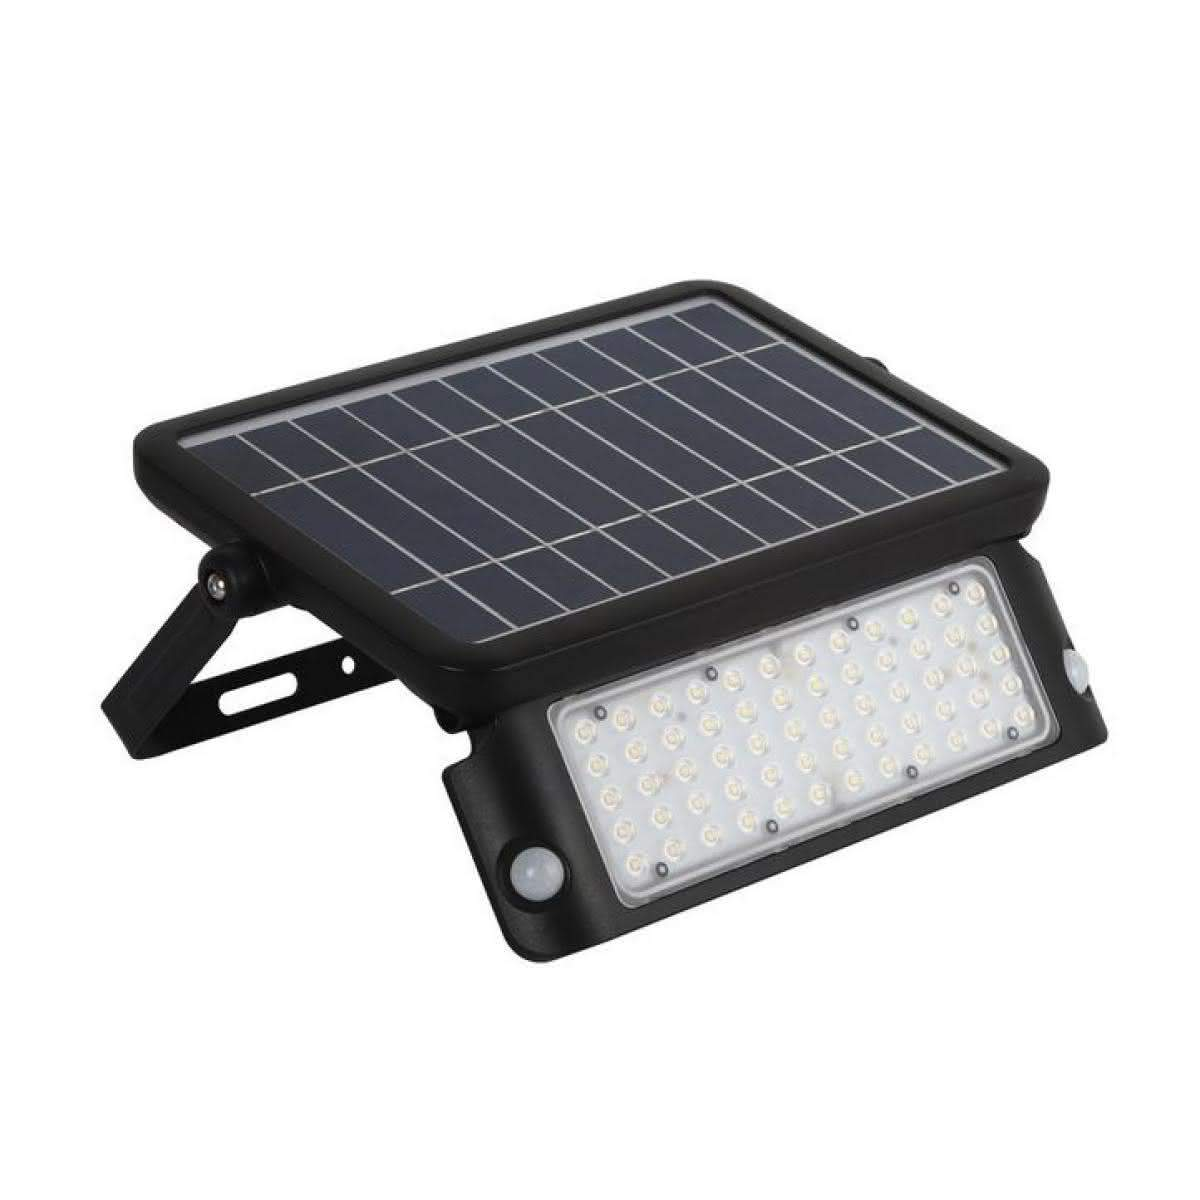 LED floodlight LED floodlight  SOLAR LED MHC 10W NB black  10W 1080lm CRI80 120° IP65 4000K pure white